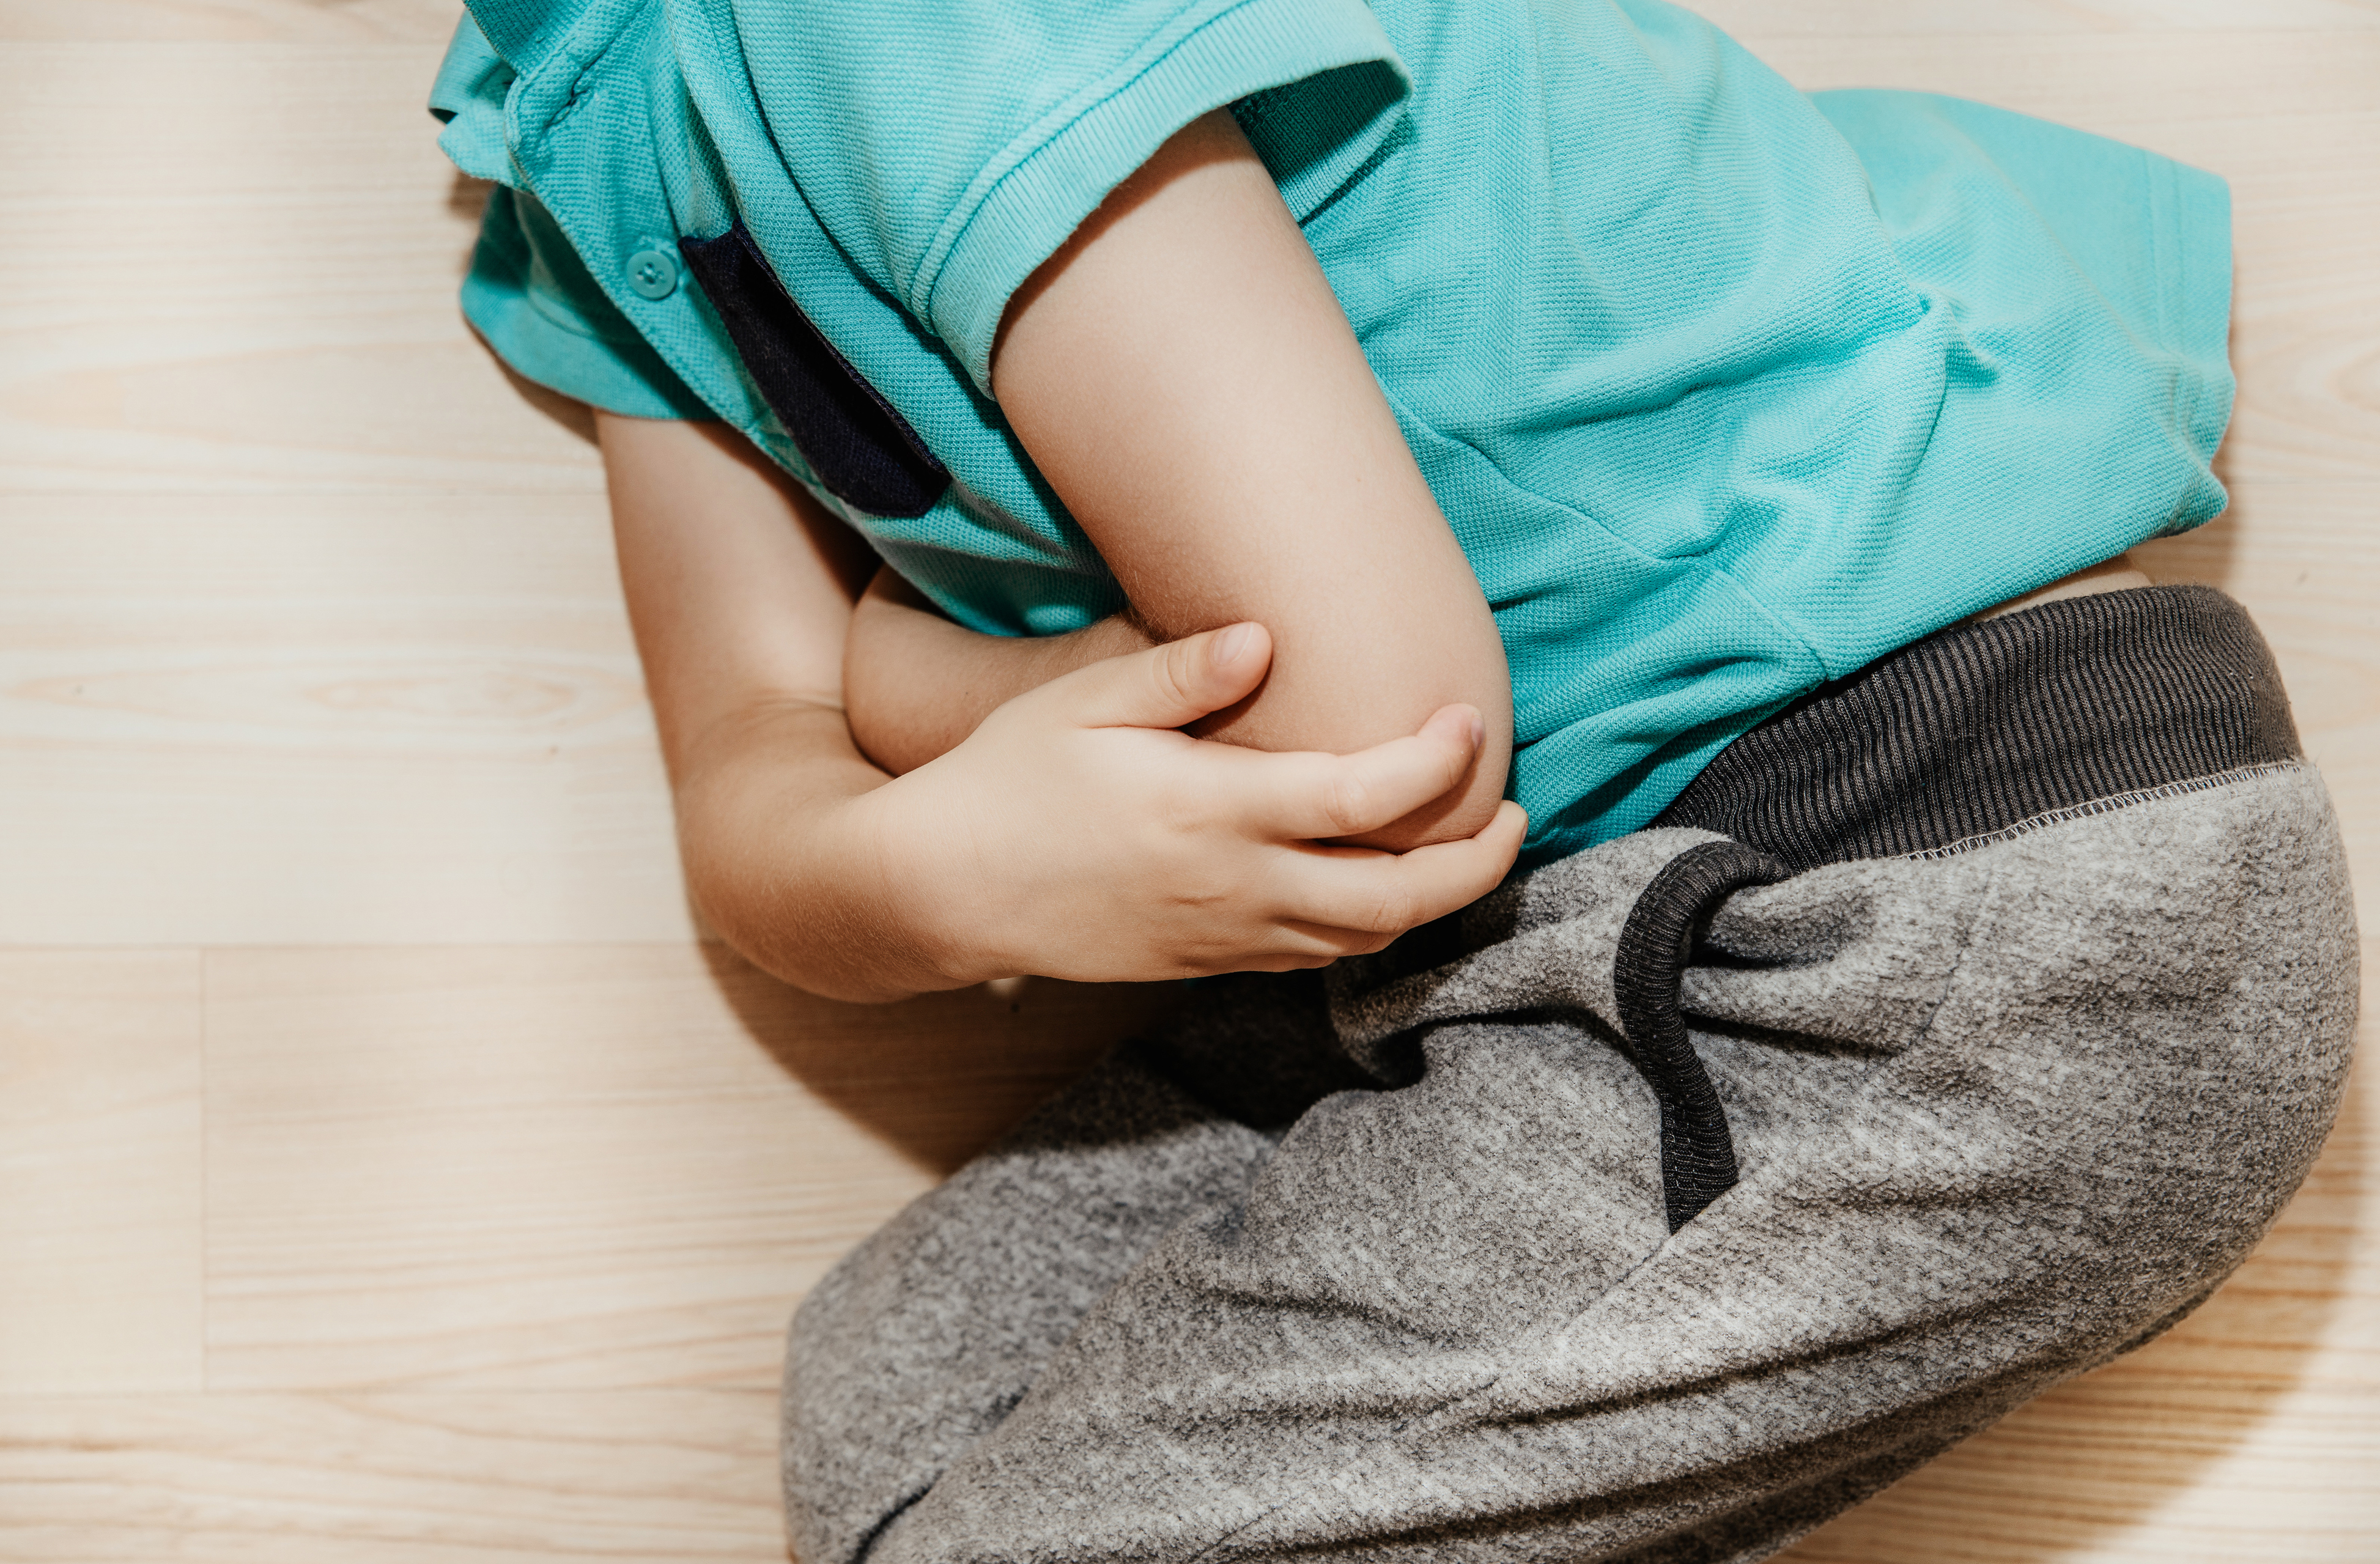 a child holding their stomach due to constipation - constipation in children